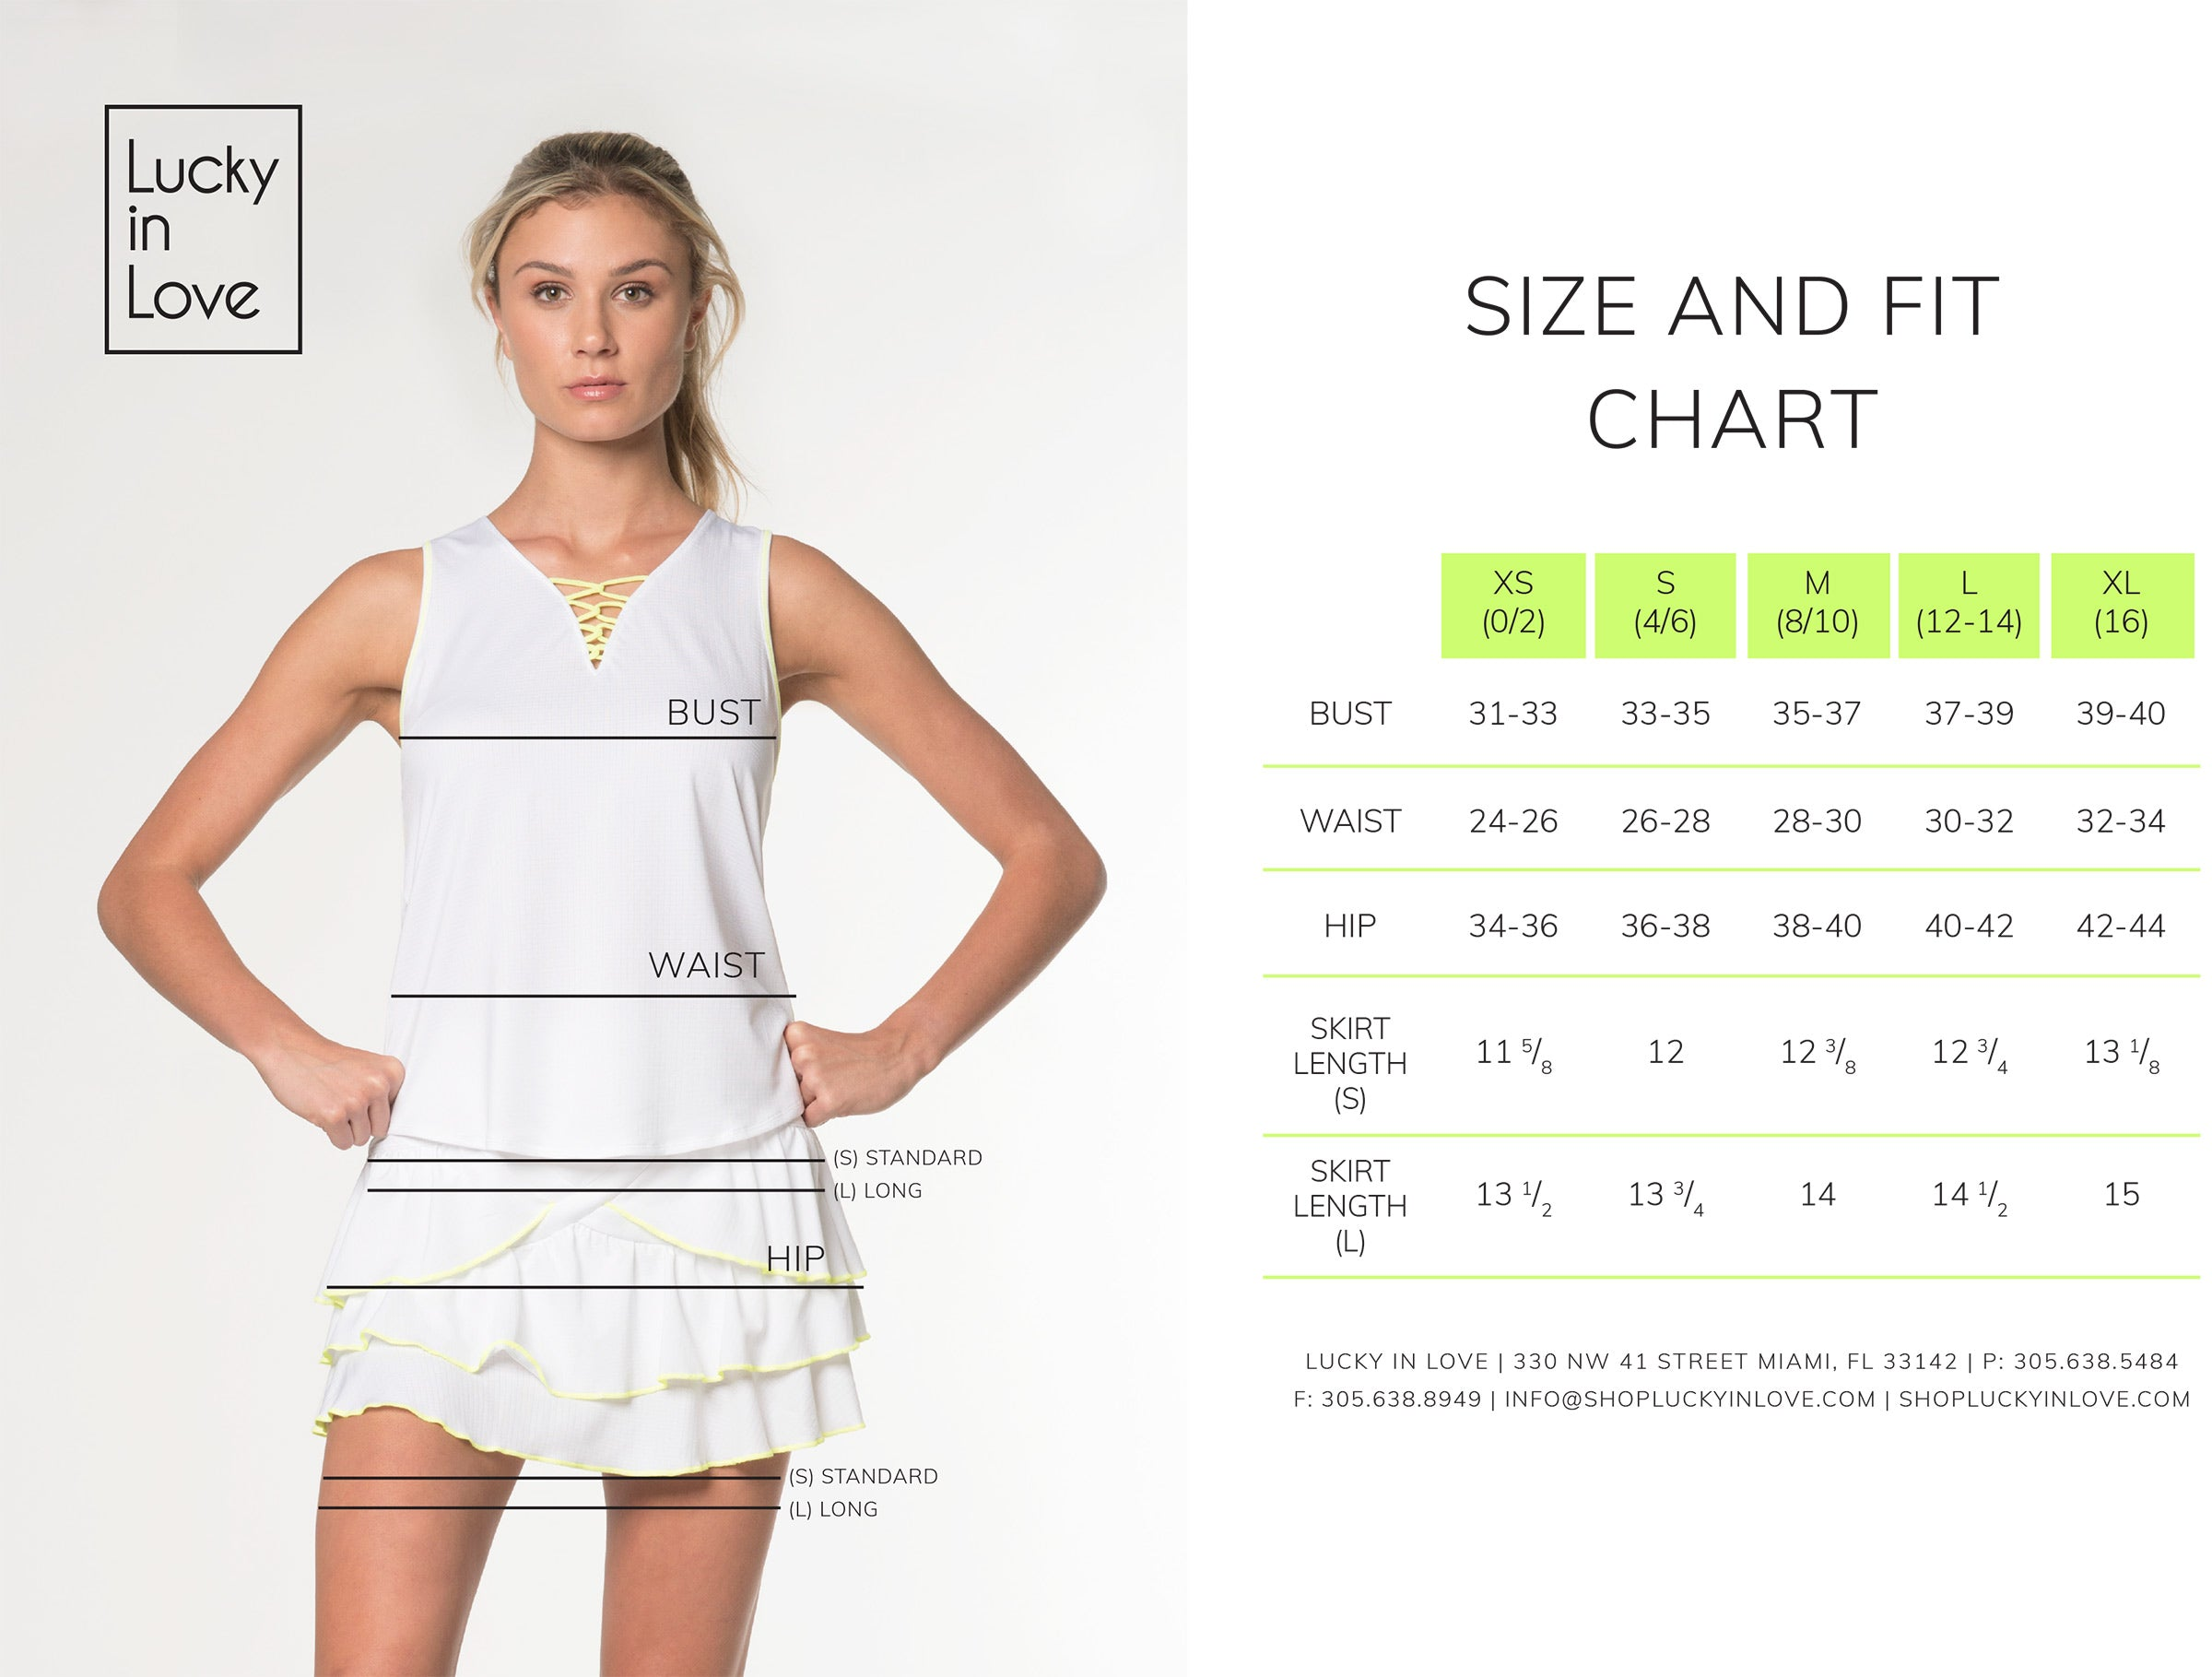 lucky in Love sizing chart